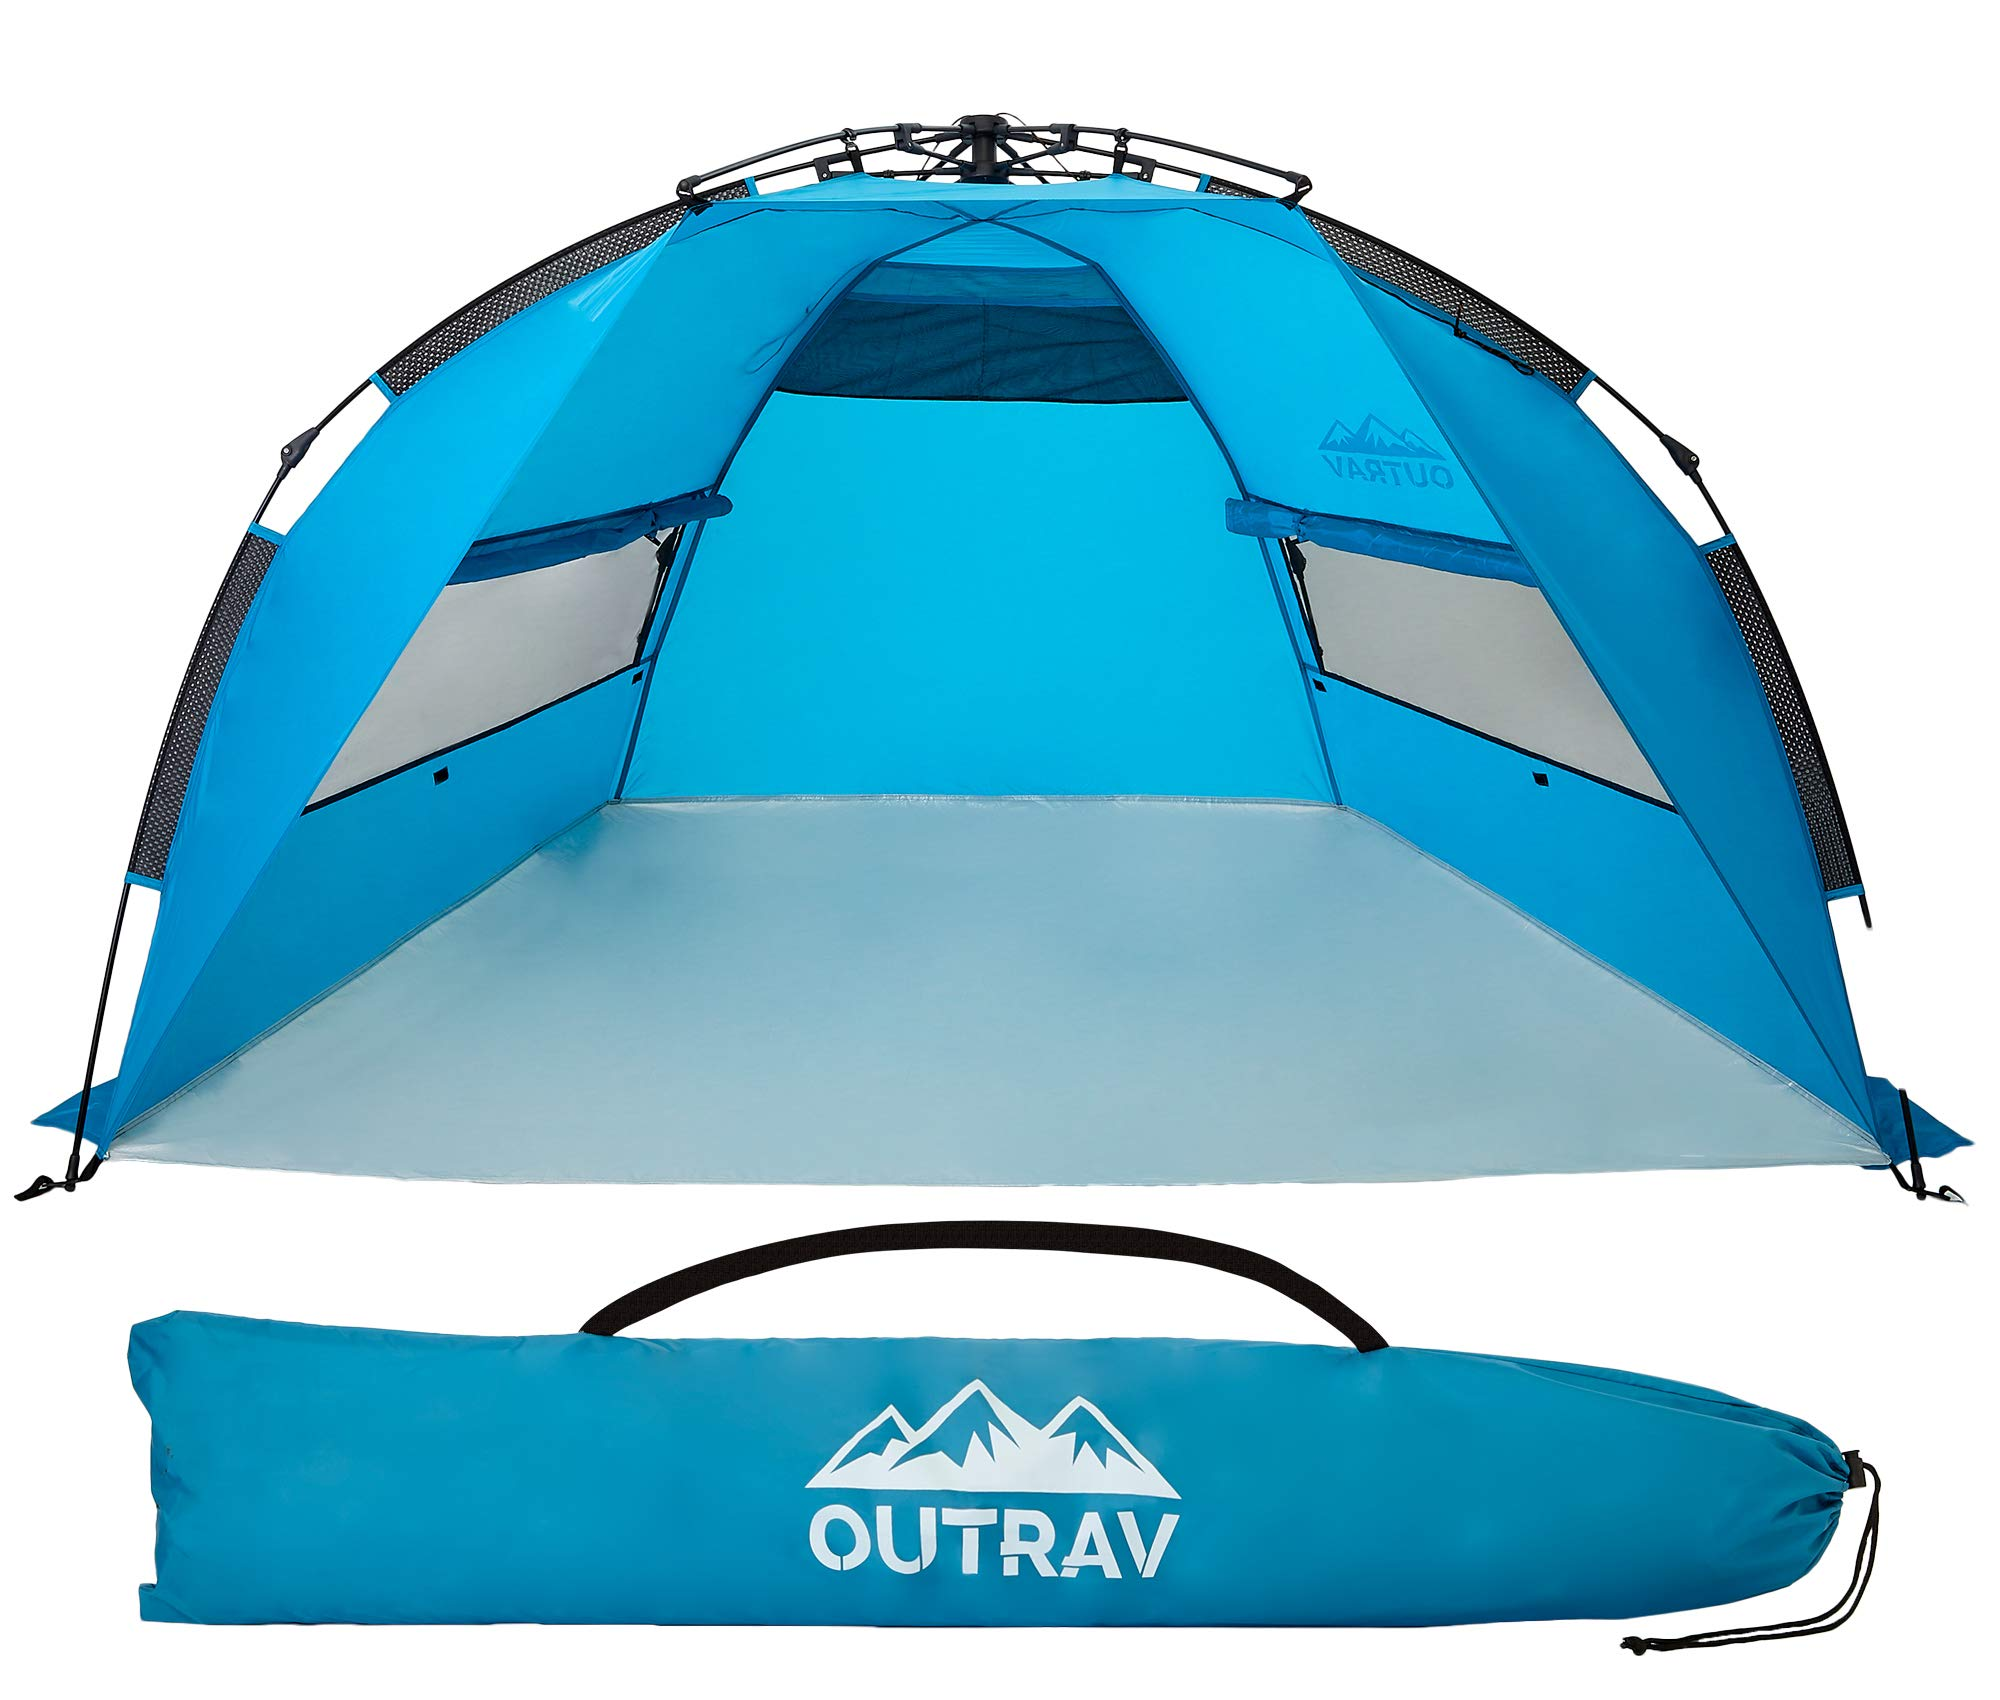 Outrav Pop Up Beach Tent - Quick and Easy Set Up, Family Size, Portable Sun and Water Shelter and Shade Canopy - for Fishing, Camping, Hiking and Outdoor Activities by Outrav